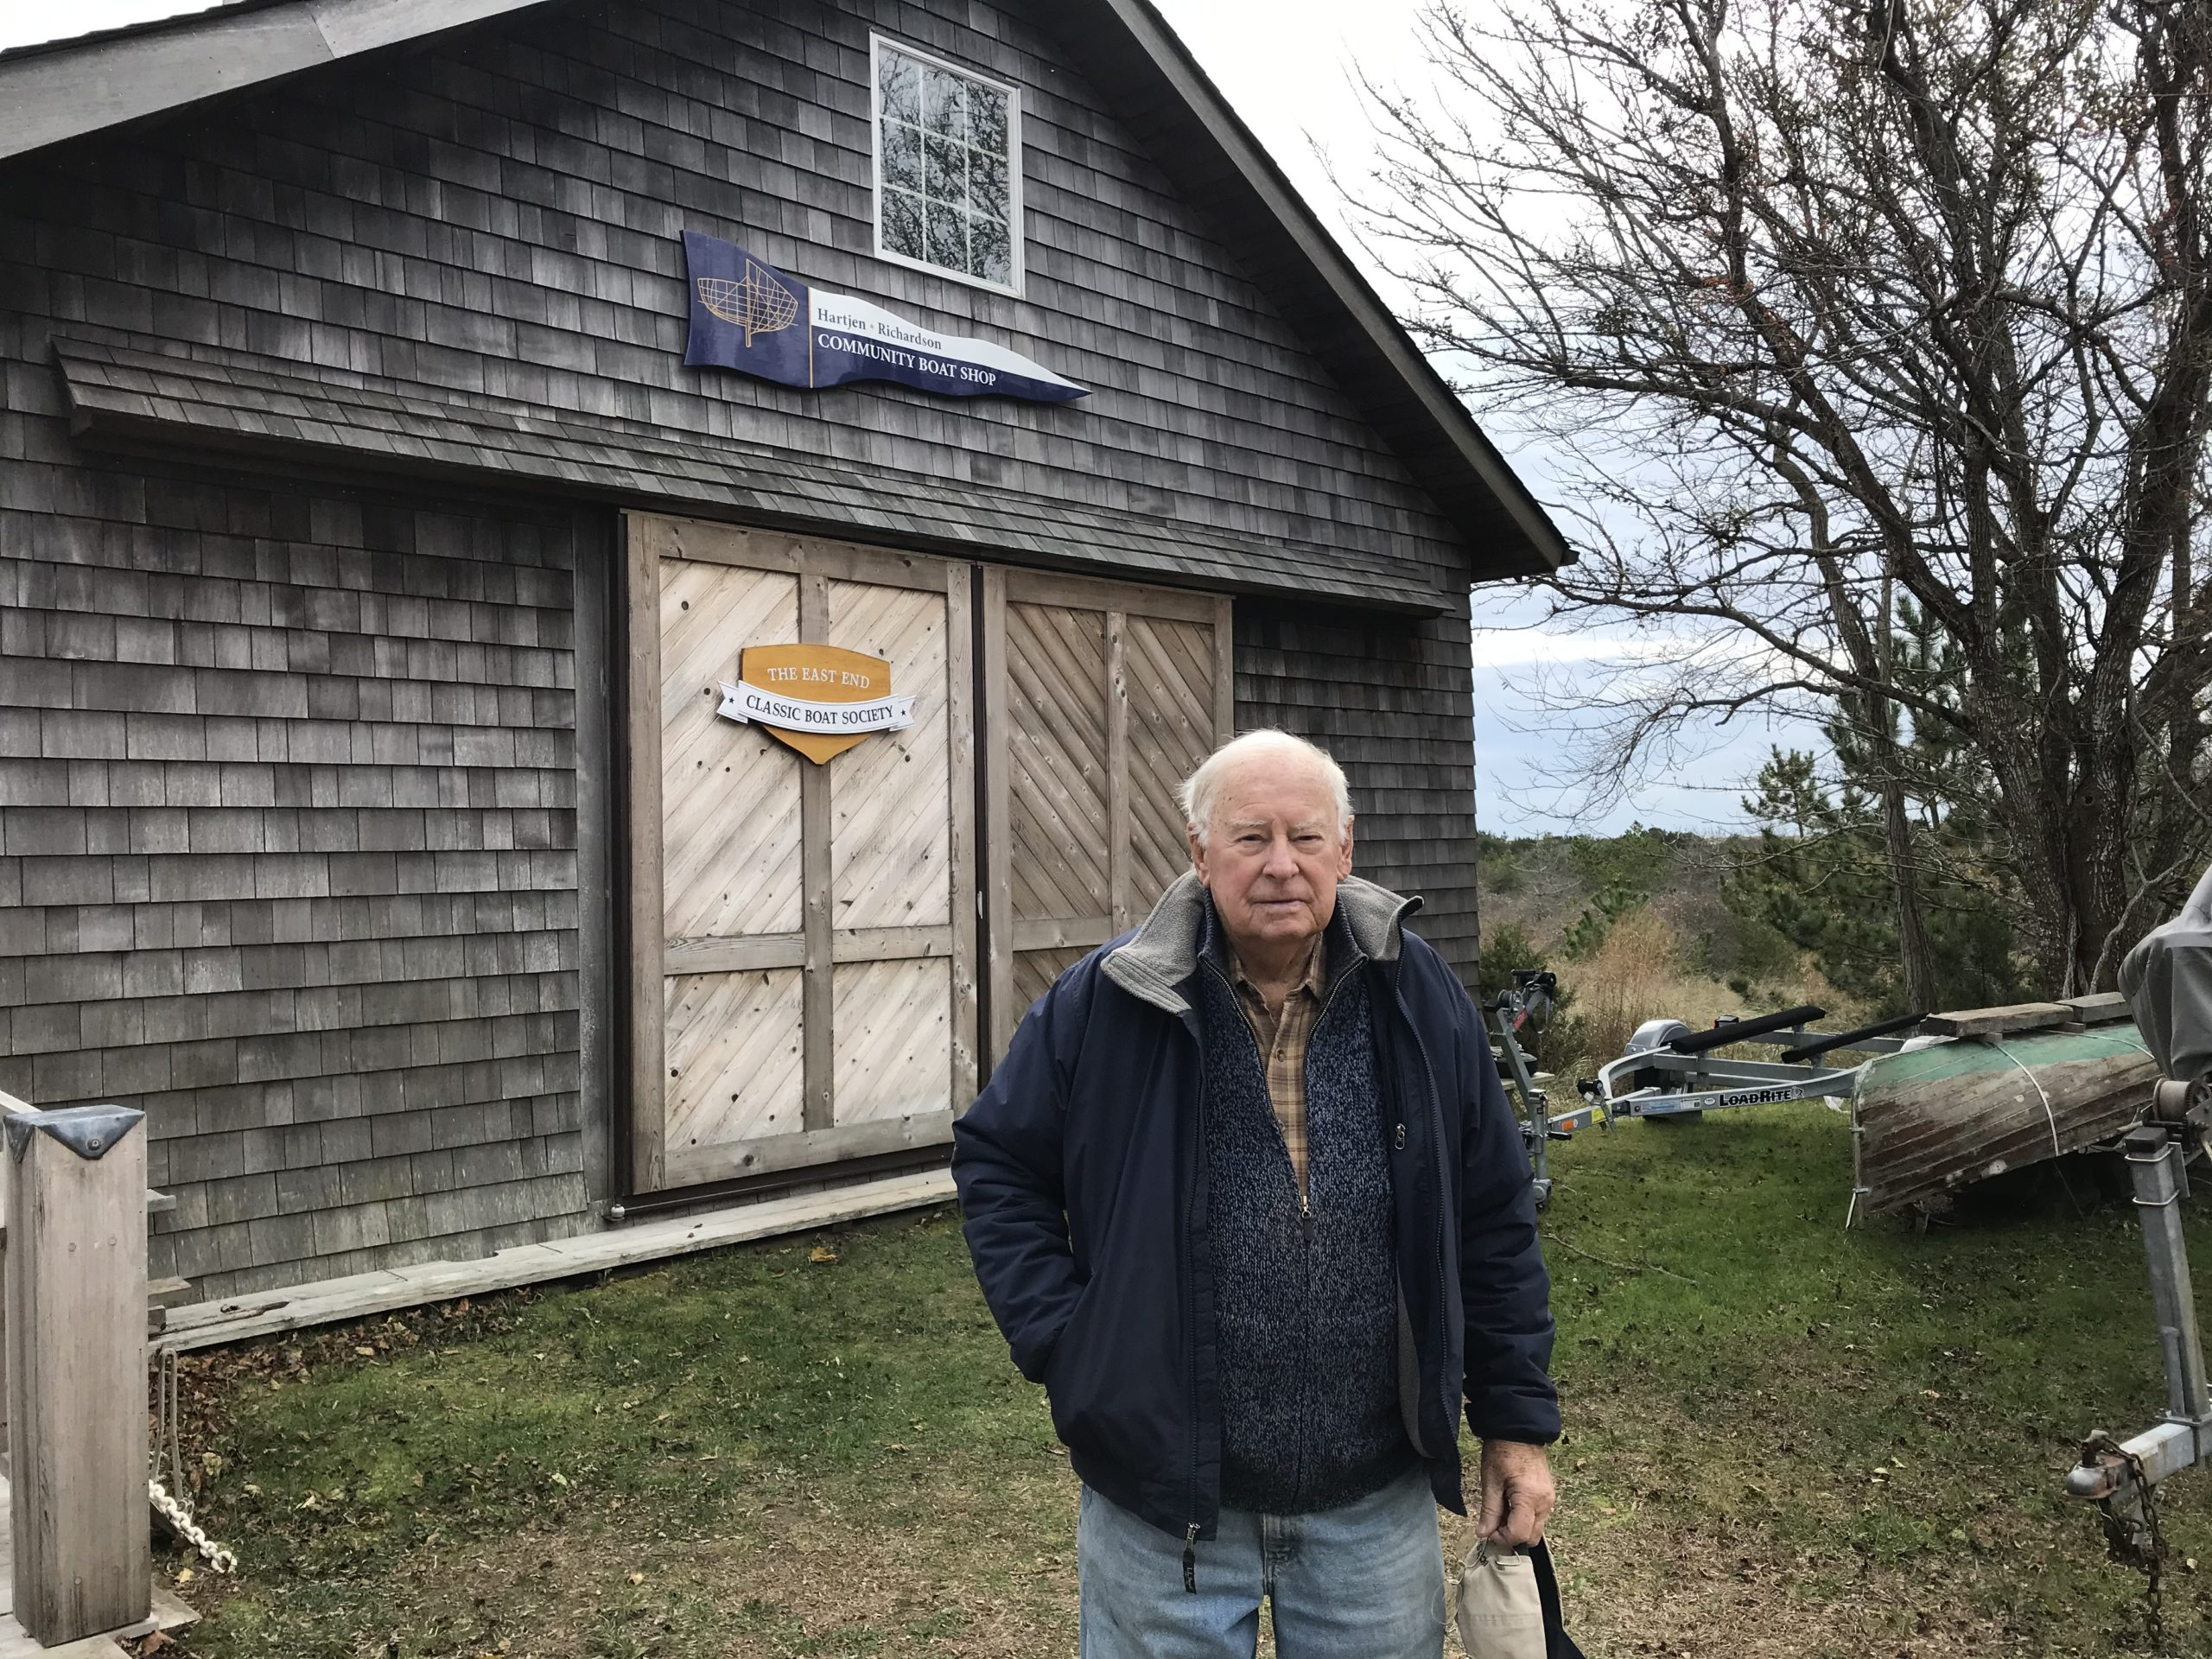 Ray Hartjen of the East End Classic Boat Society is spearheading an effort to bring the whale back to Amagansett. ELIZABETH VESPE